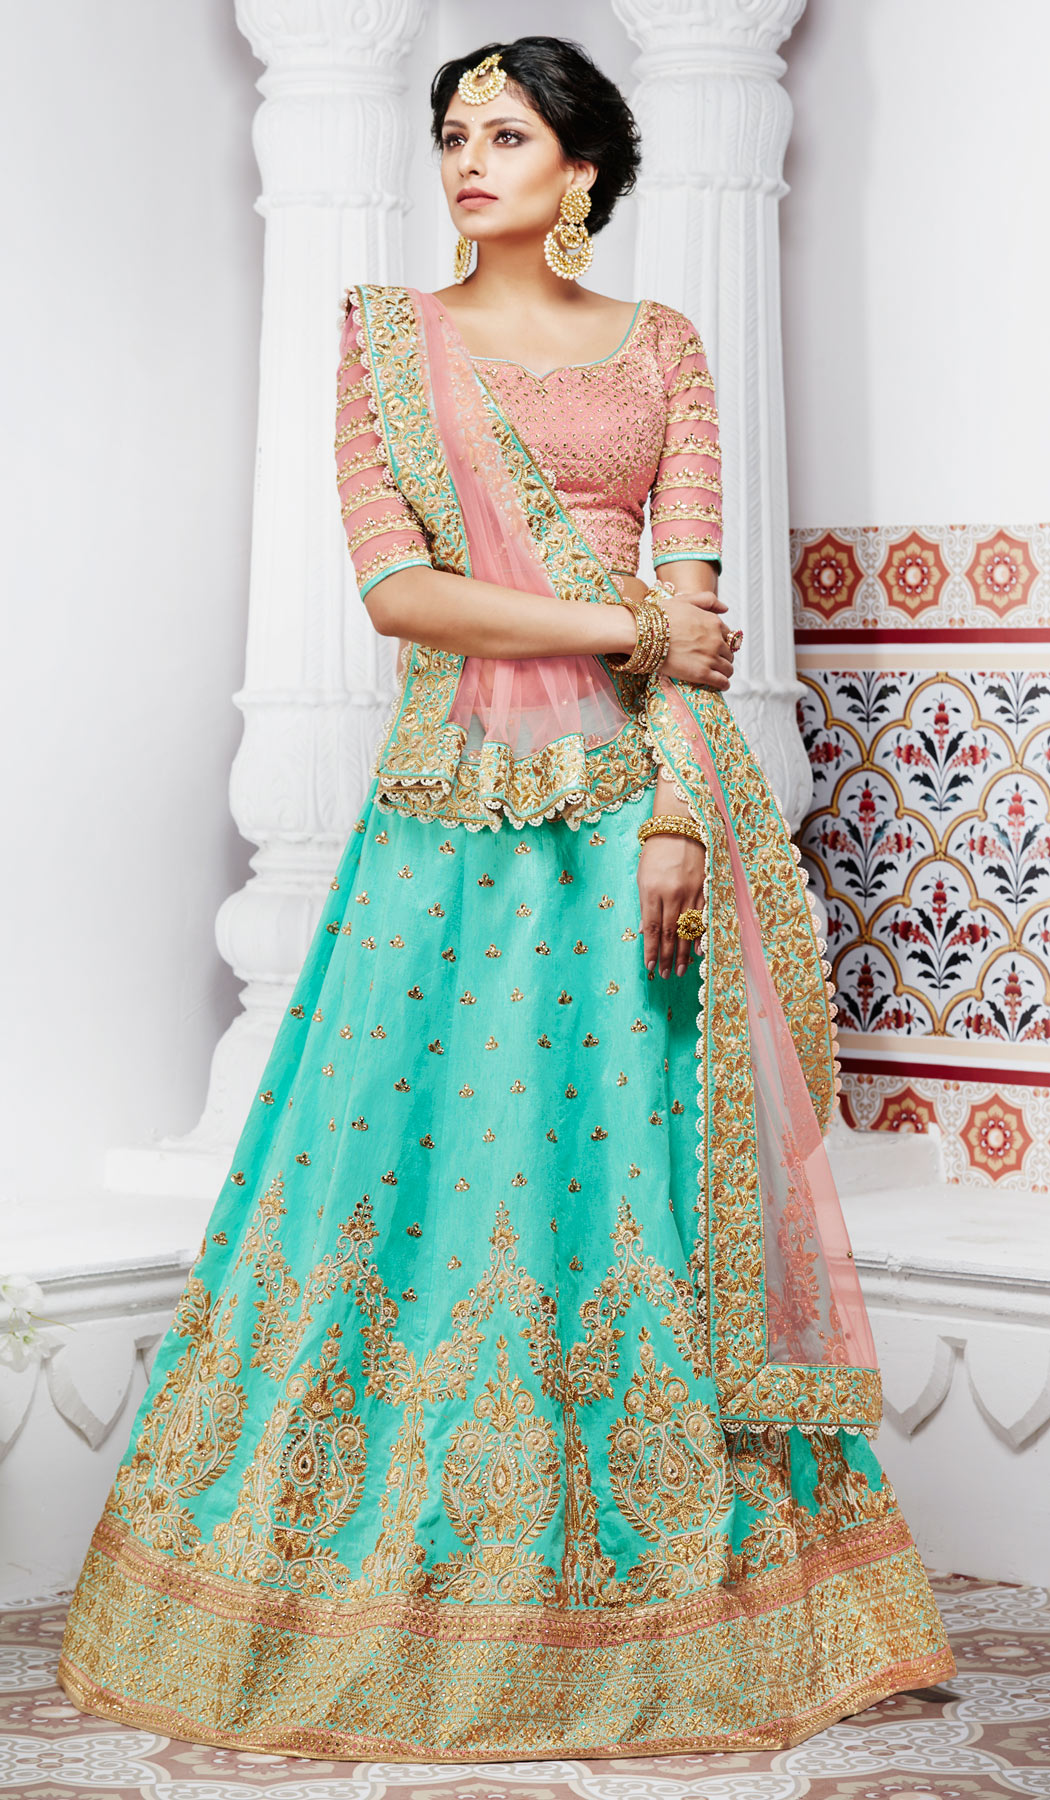 Sensational Turquoise Green And Peach Handwoven Silk Designer Lehenga Choli